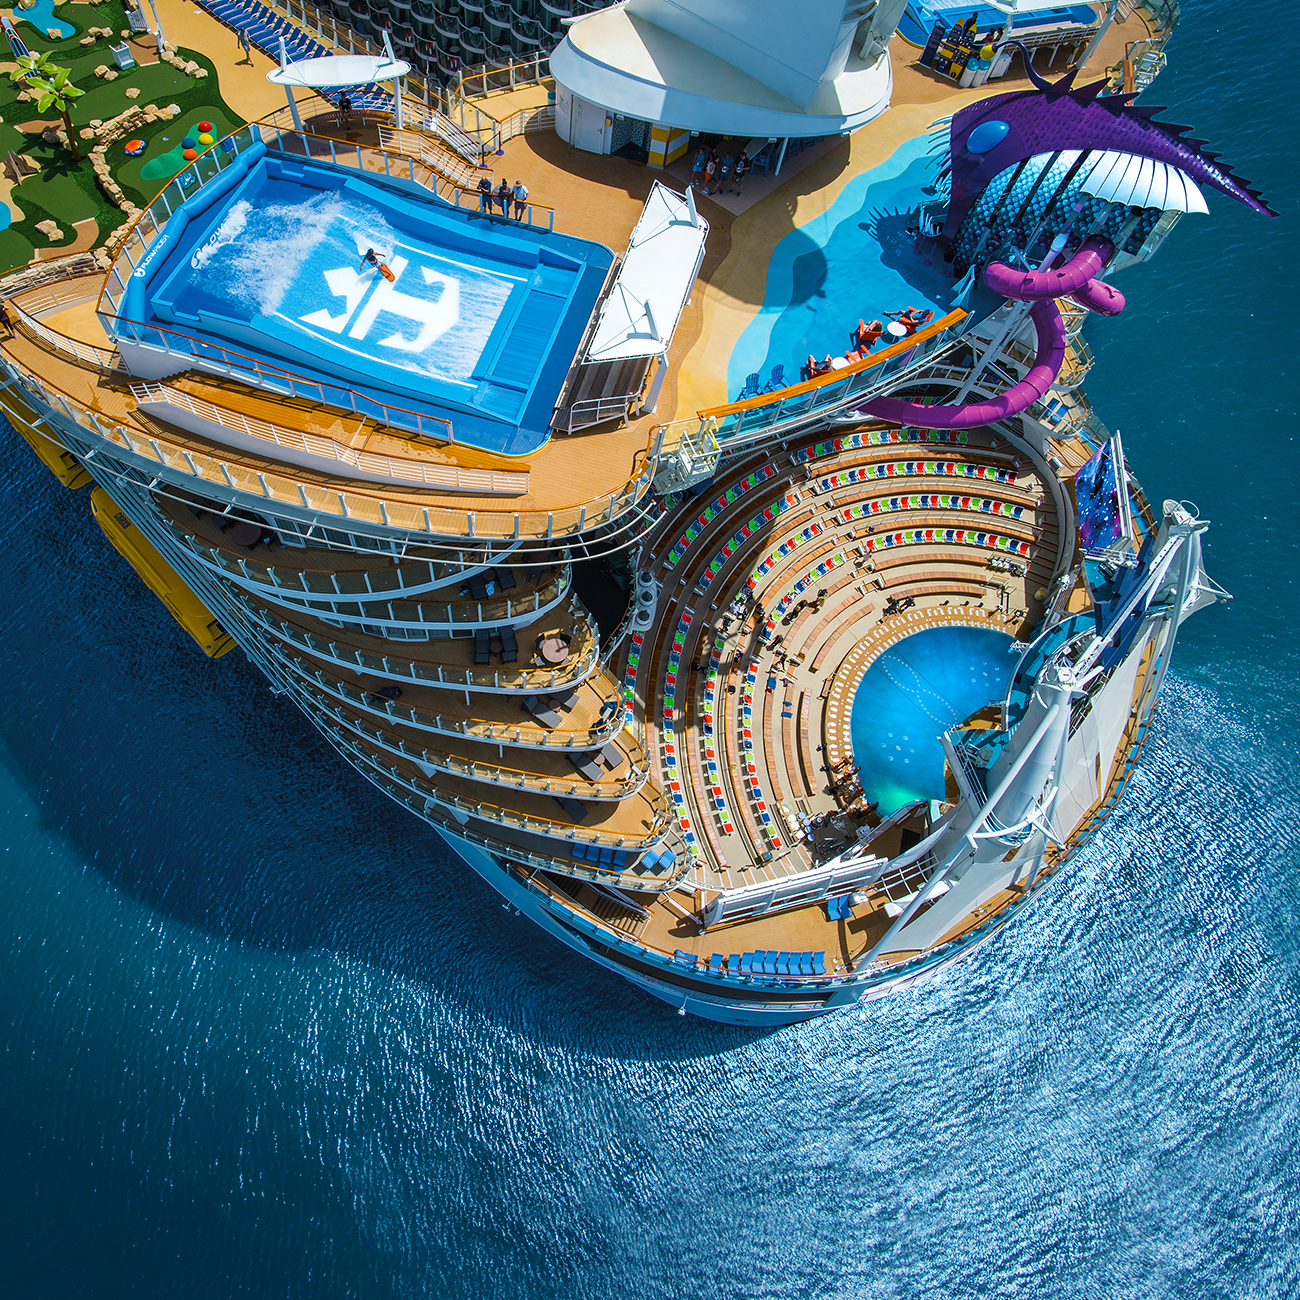 Digital signage, print collateral, web pages, & email templates for Royal Caribbean, Celebrity Cruises, and Azamara